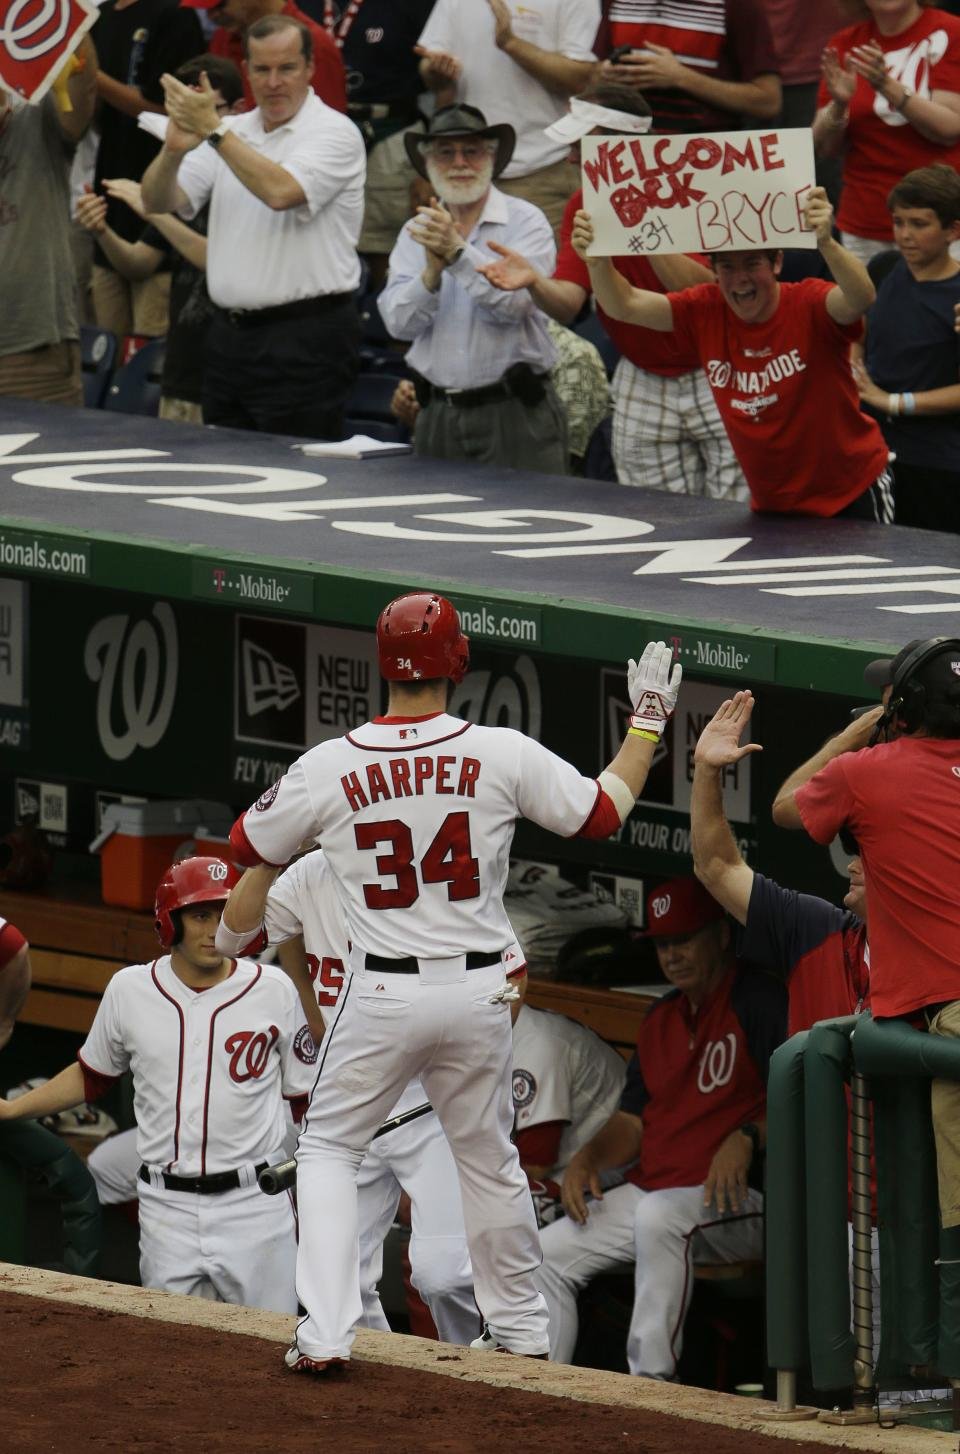 Washington Nationals Bryce Harper is greeted at dugout by teammates after hitting a solo homer against the Milwaukee Brewers starting pitcher Yovani Gallardo in the first inning of a baseball game at Nationals Park, Monday, July 1, 2013, in Washington. (AP Photo/Pablo Martinez Monsivais)